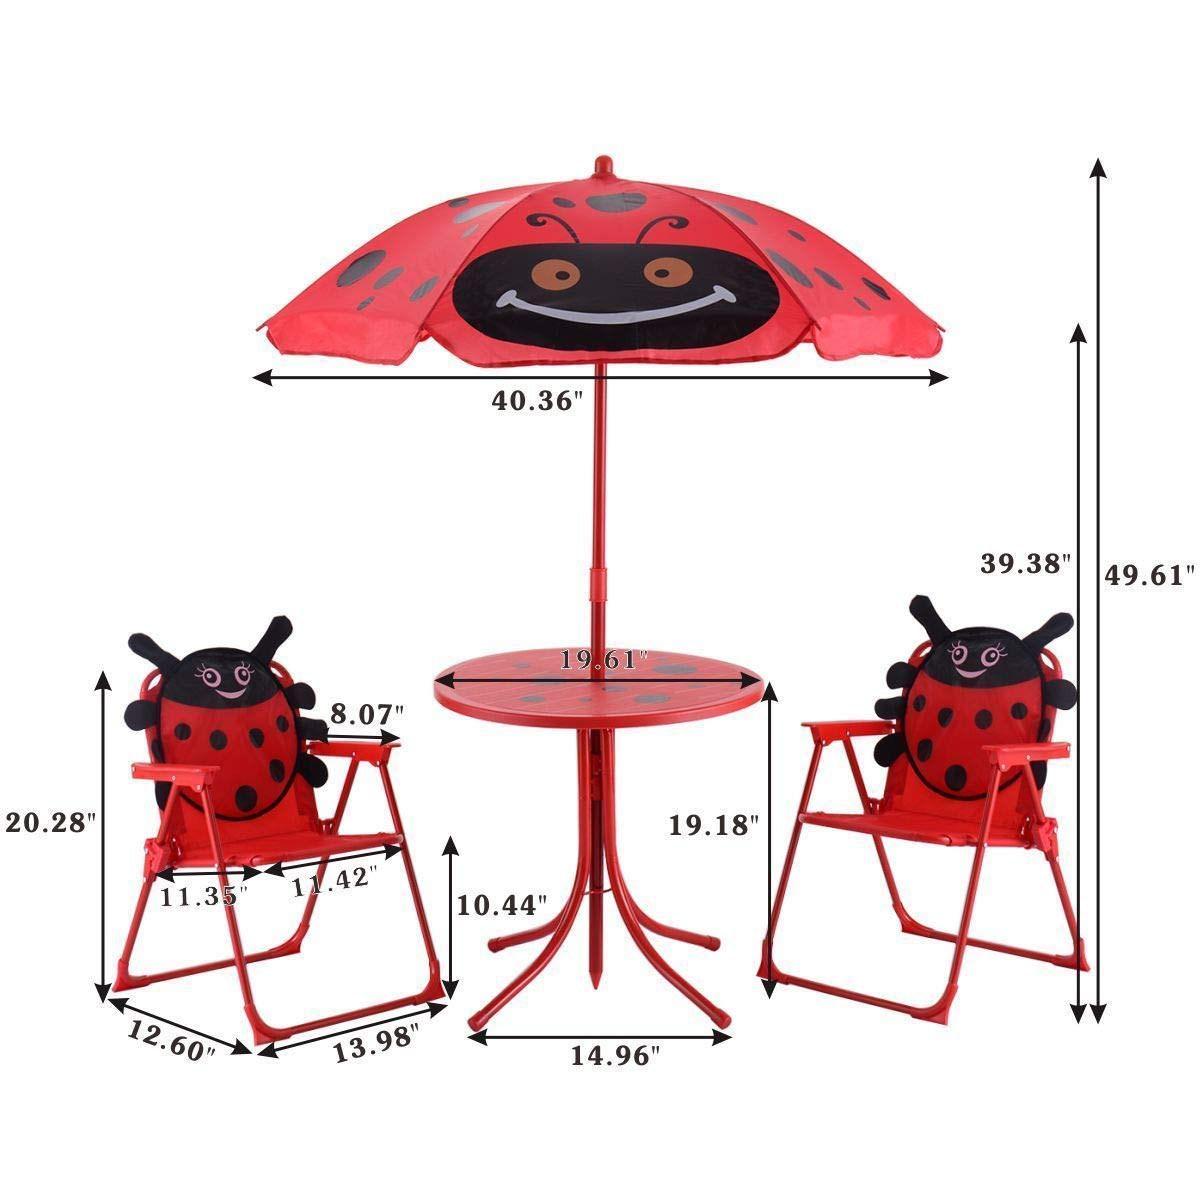 Set of 3 Red Beetle Ladybugs Pattern Kid Chair+Table+Umbrella Patio Garden Backyard Front yard Children Furniture Utility Kid room Foldable Easy Storage Light Weight Trip Party Event Picnic Home by Prettyshop4246 (Image #5)